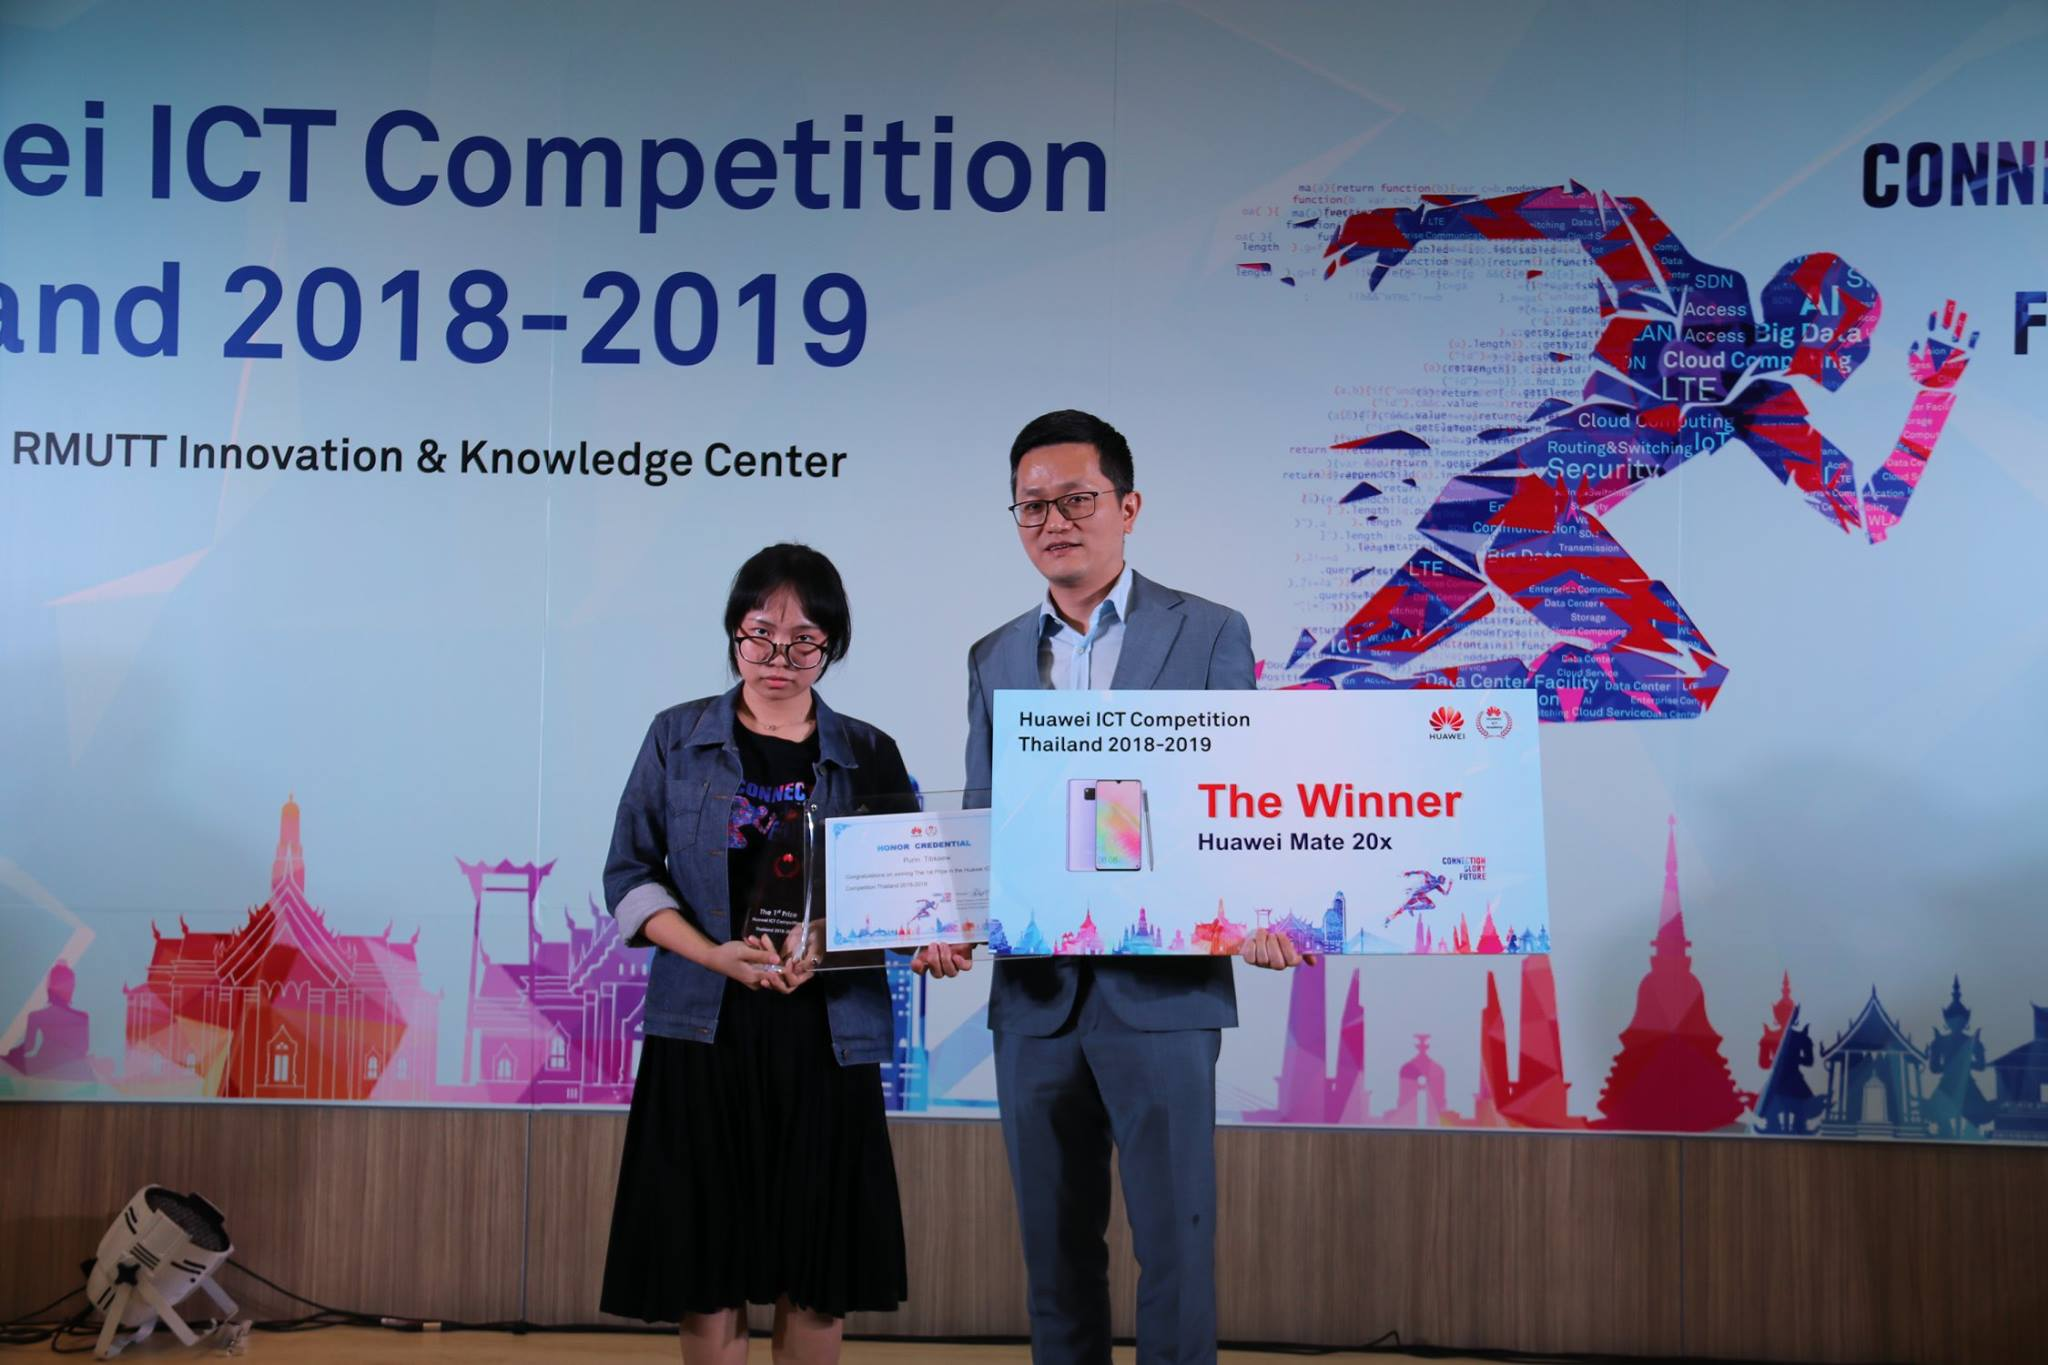 Huawei ICT Competition Thailand 2018 -2019